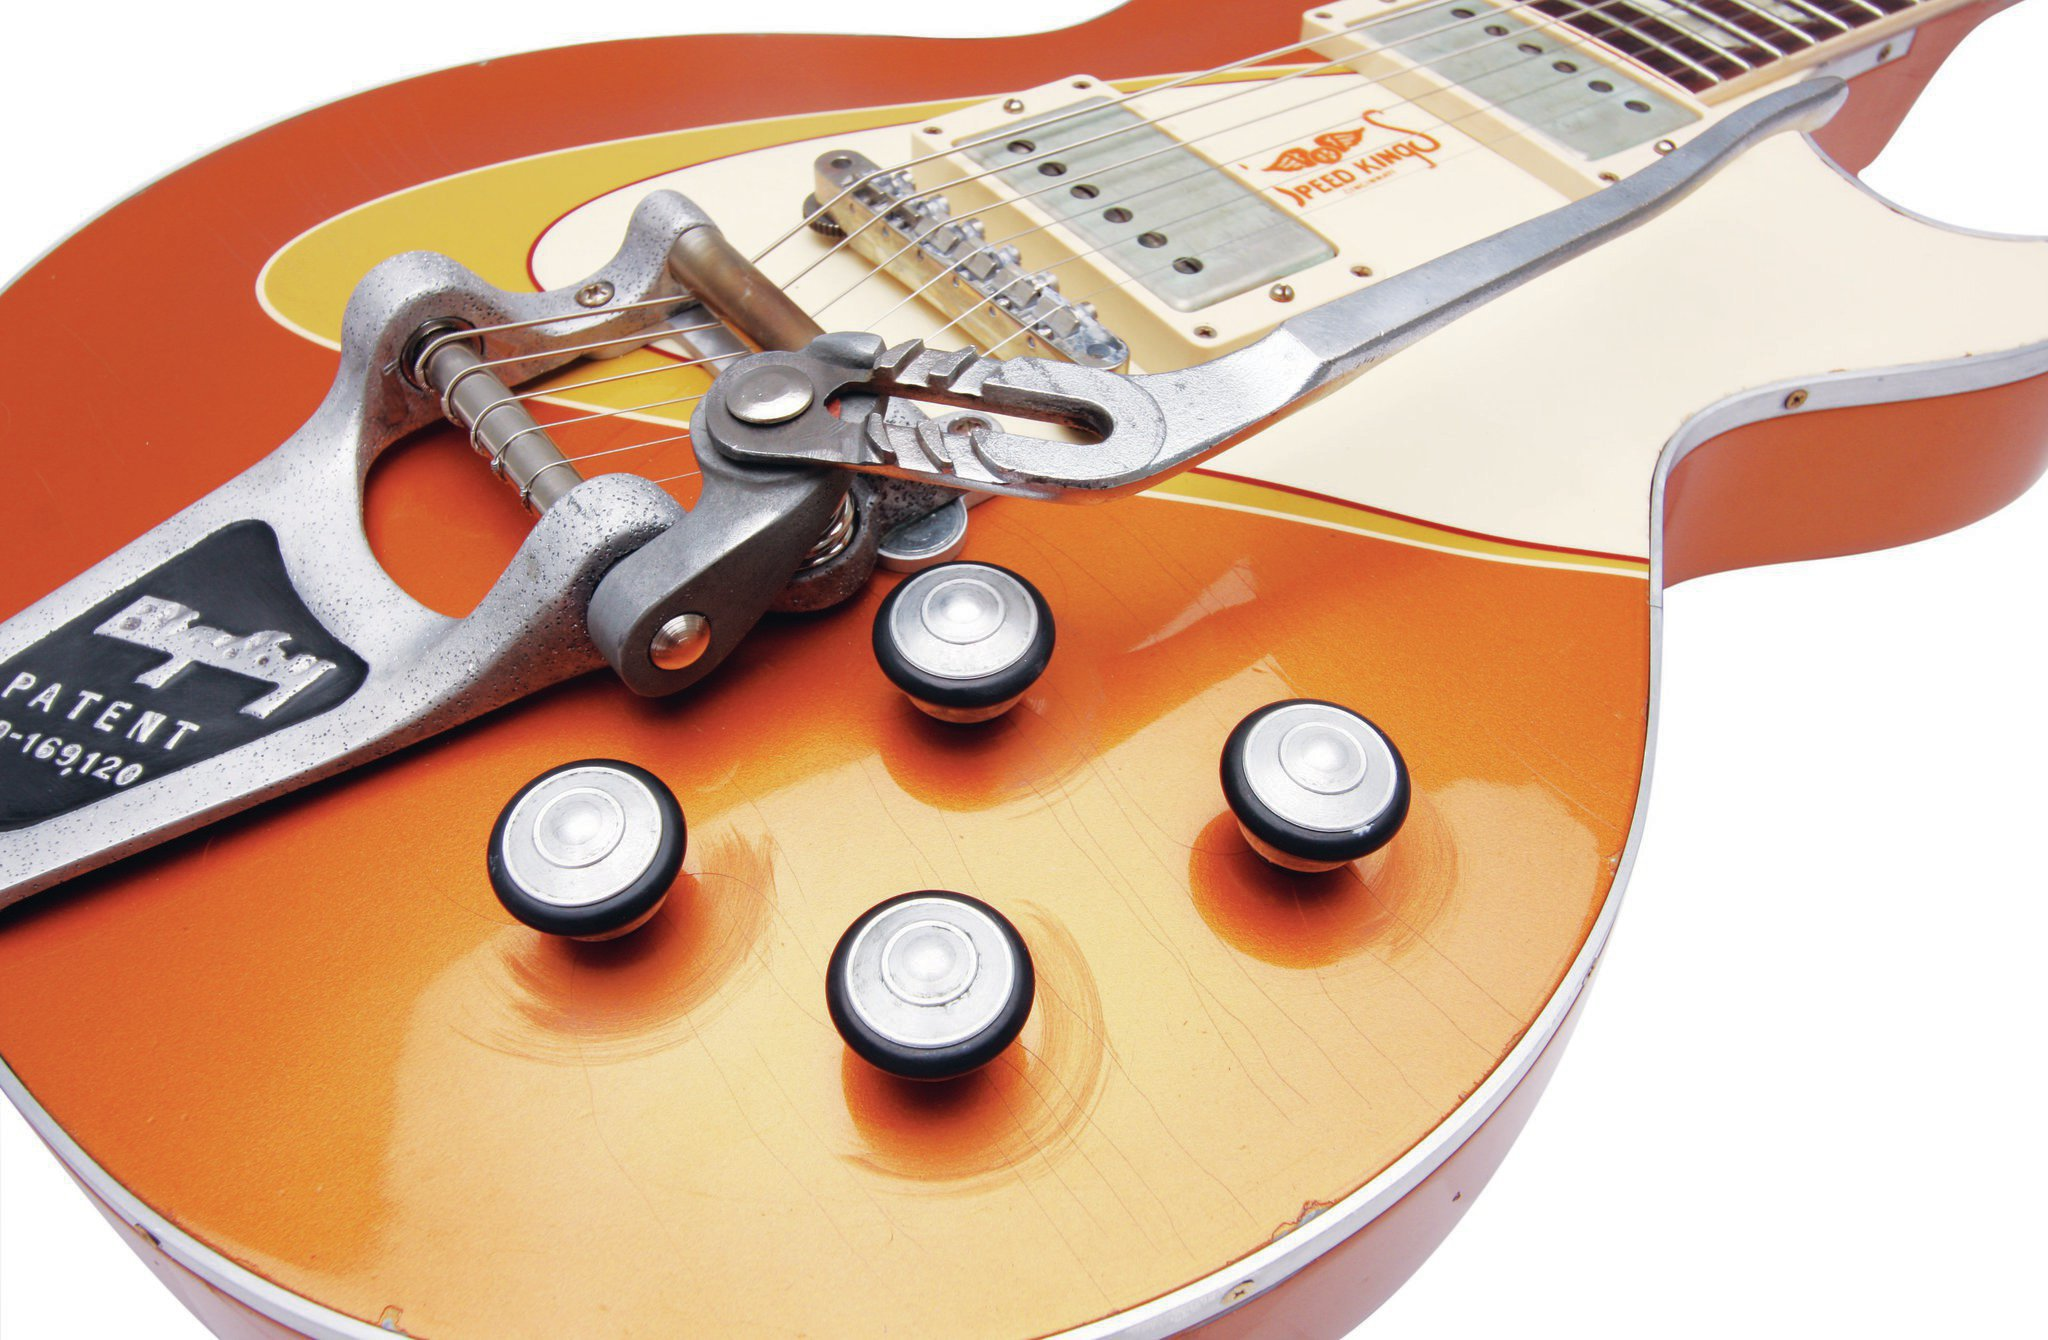 The arm on the Bigsby Vibrato is from a set of Channellock pliers, and the aluminum and rubber knobs are in homage to the wheels and tires on Scott's coupe.